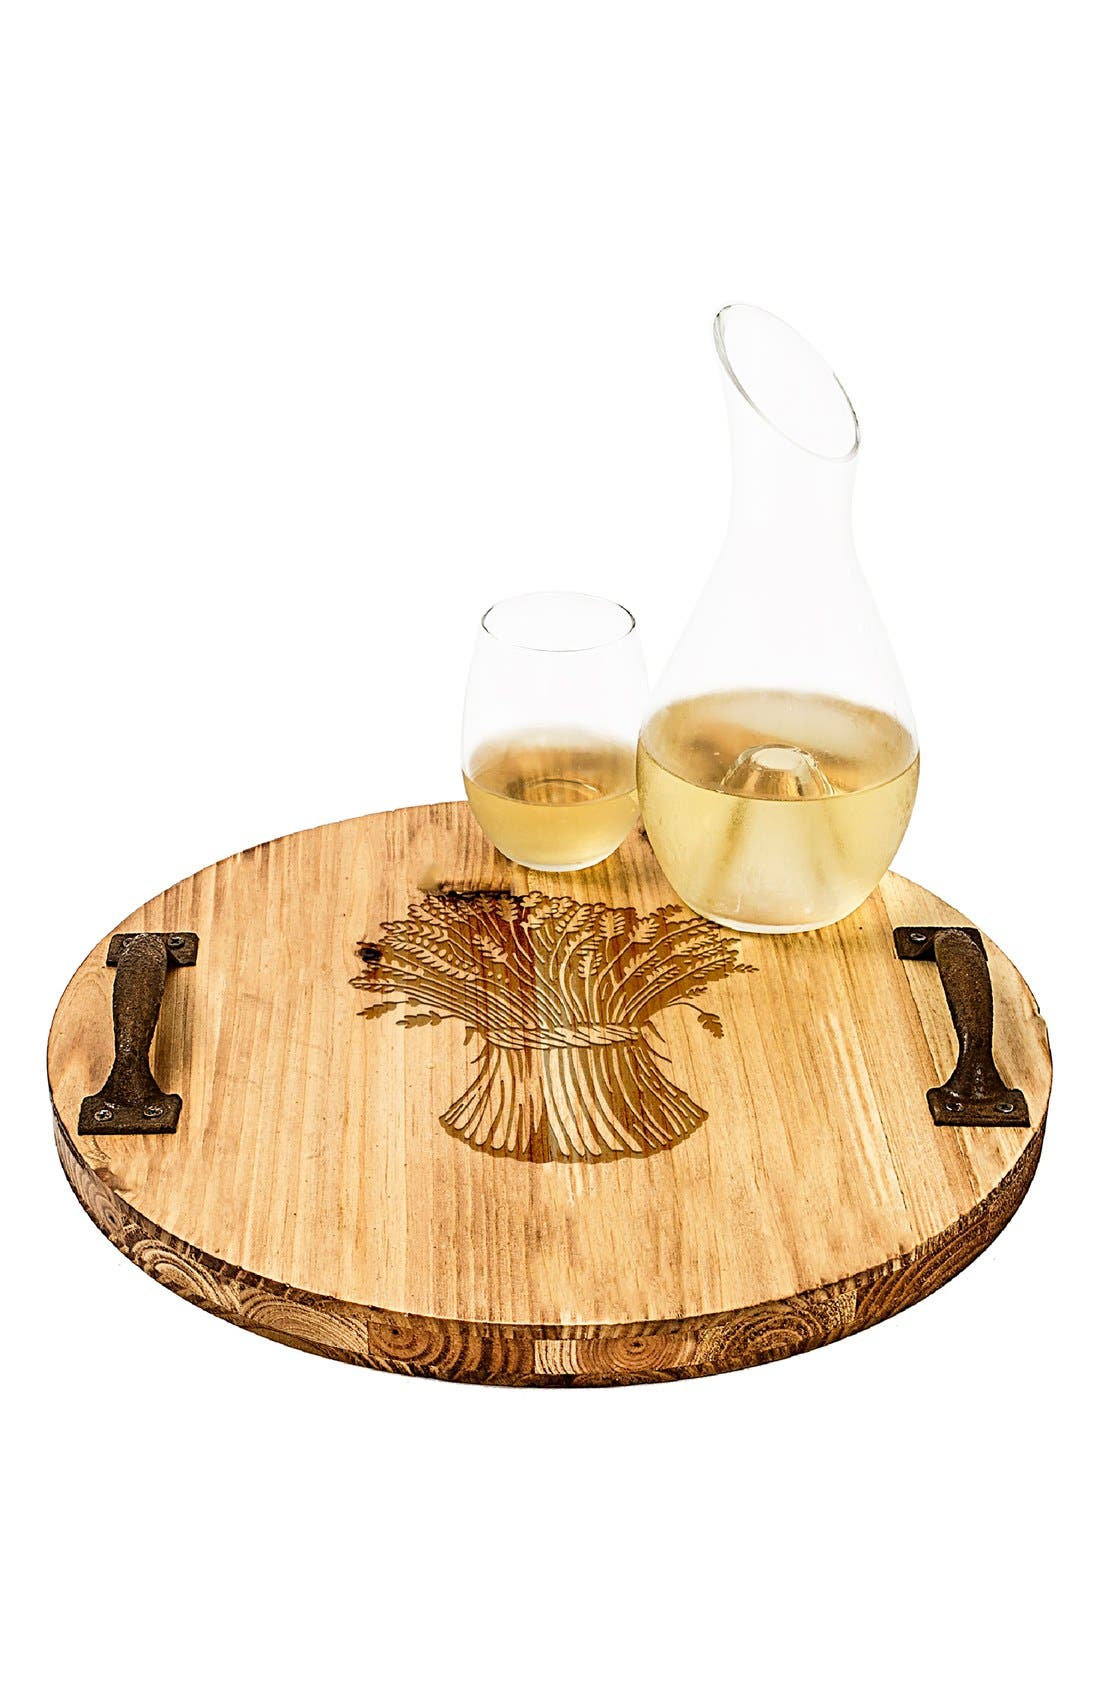 'Wheat Stalk' Rustic Wooden Tray,                             Main thumbnail 1, color,                             Brown